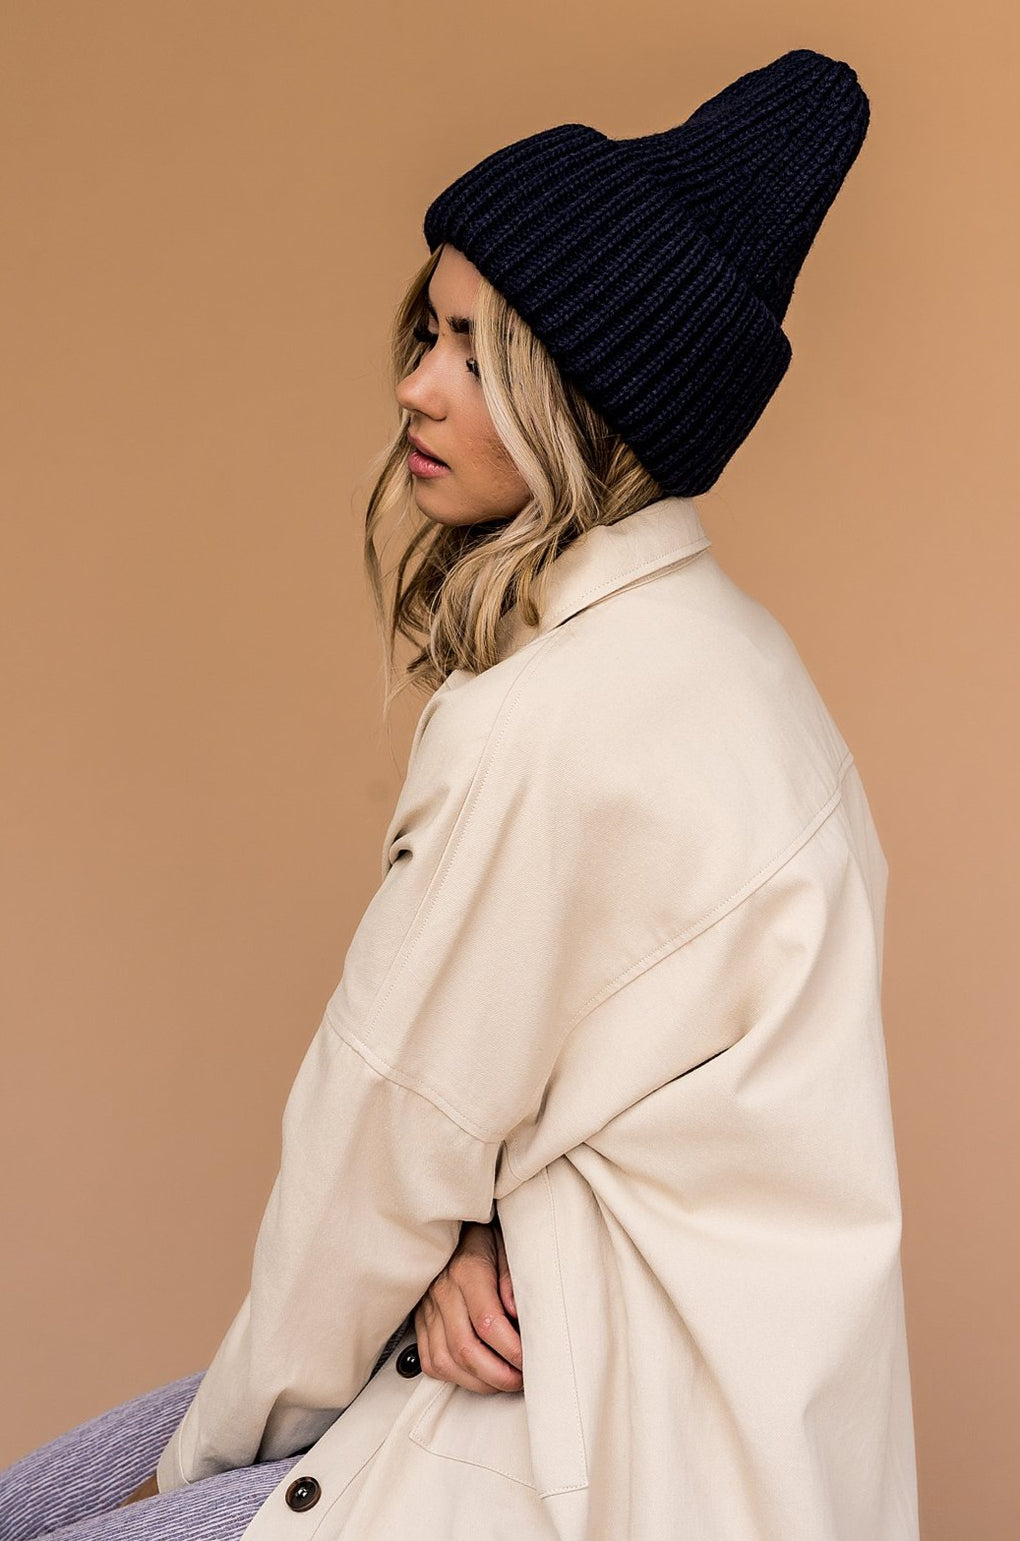 Grunge Chic Beanie in Navy